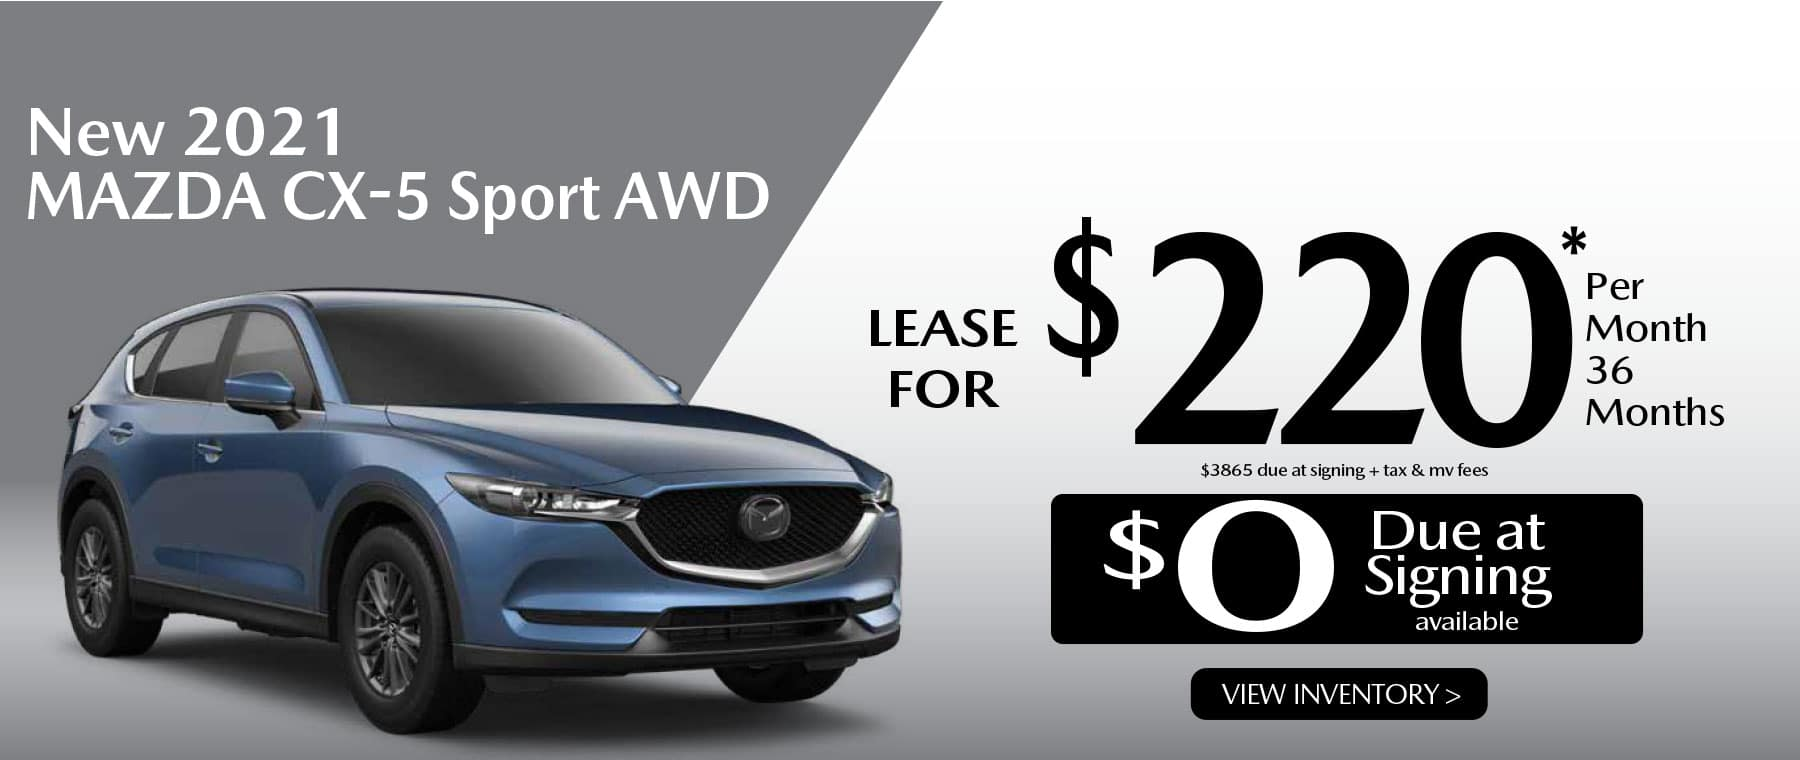 03 CX-5 hi New Lease Special Offer Garden City Mazda NY